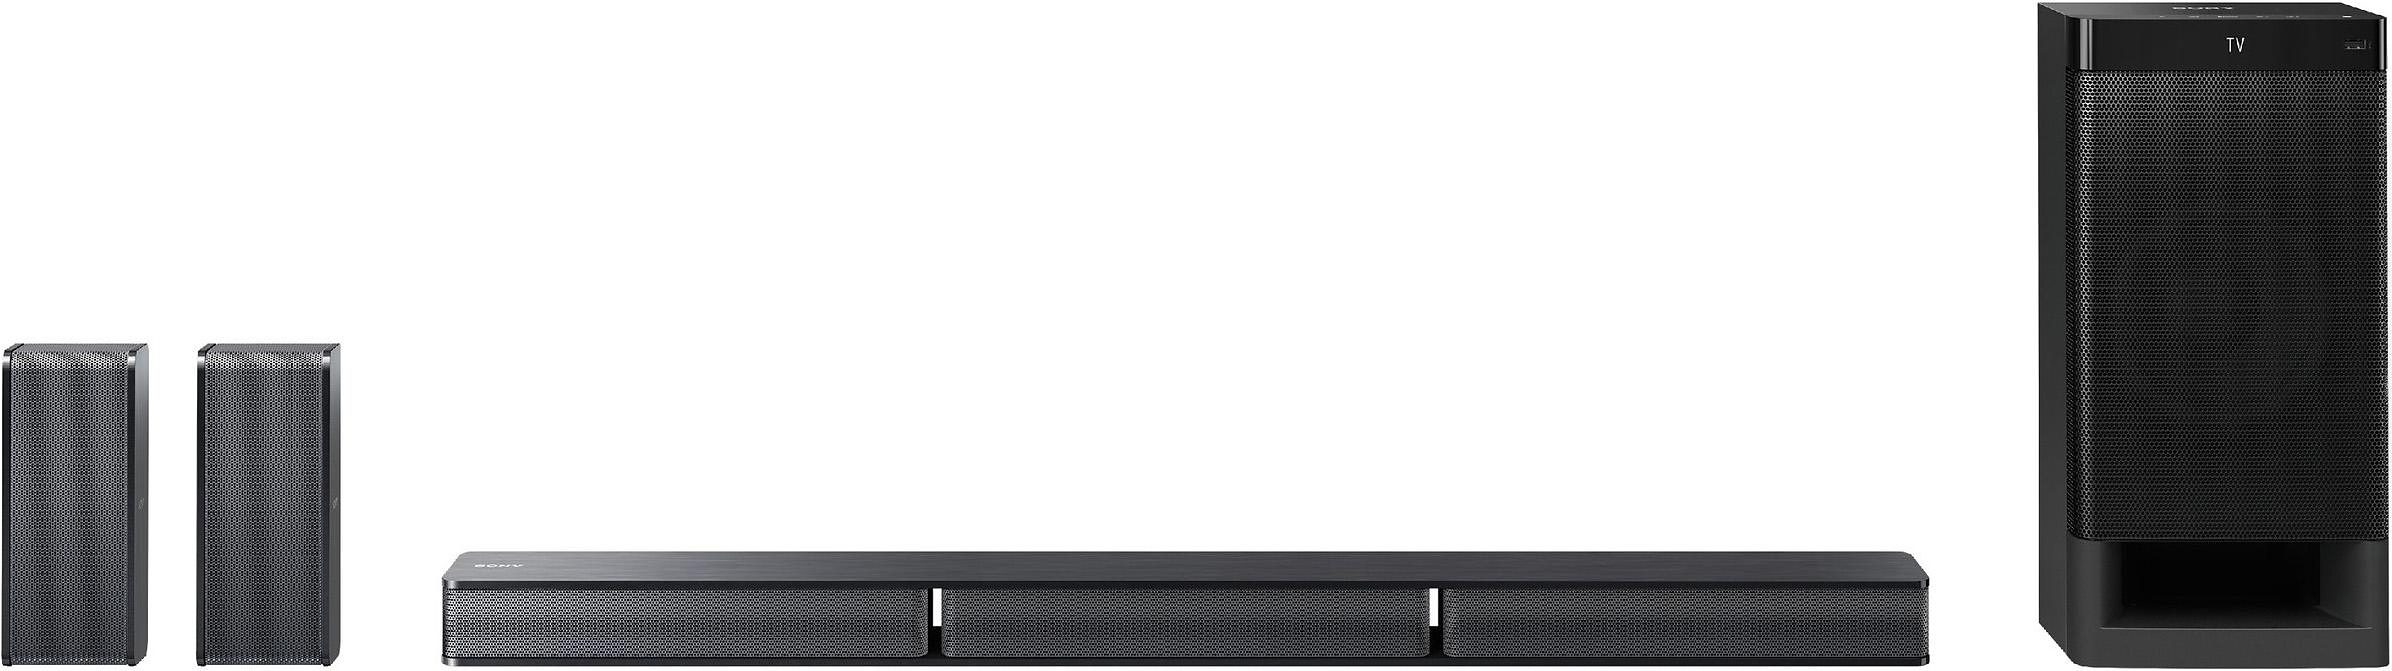 sony ht rt3 5 1 soundbar bluetooth nfc 600 watt auf. Black Bedroom Furniture Sets. Home Design Ideas